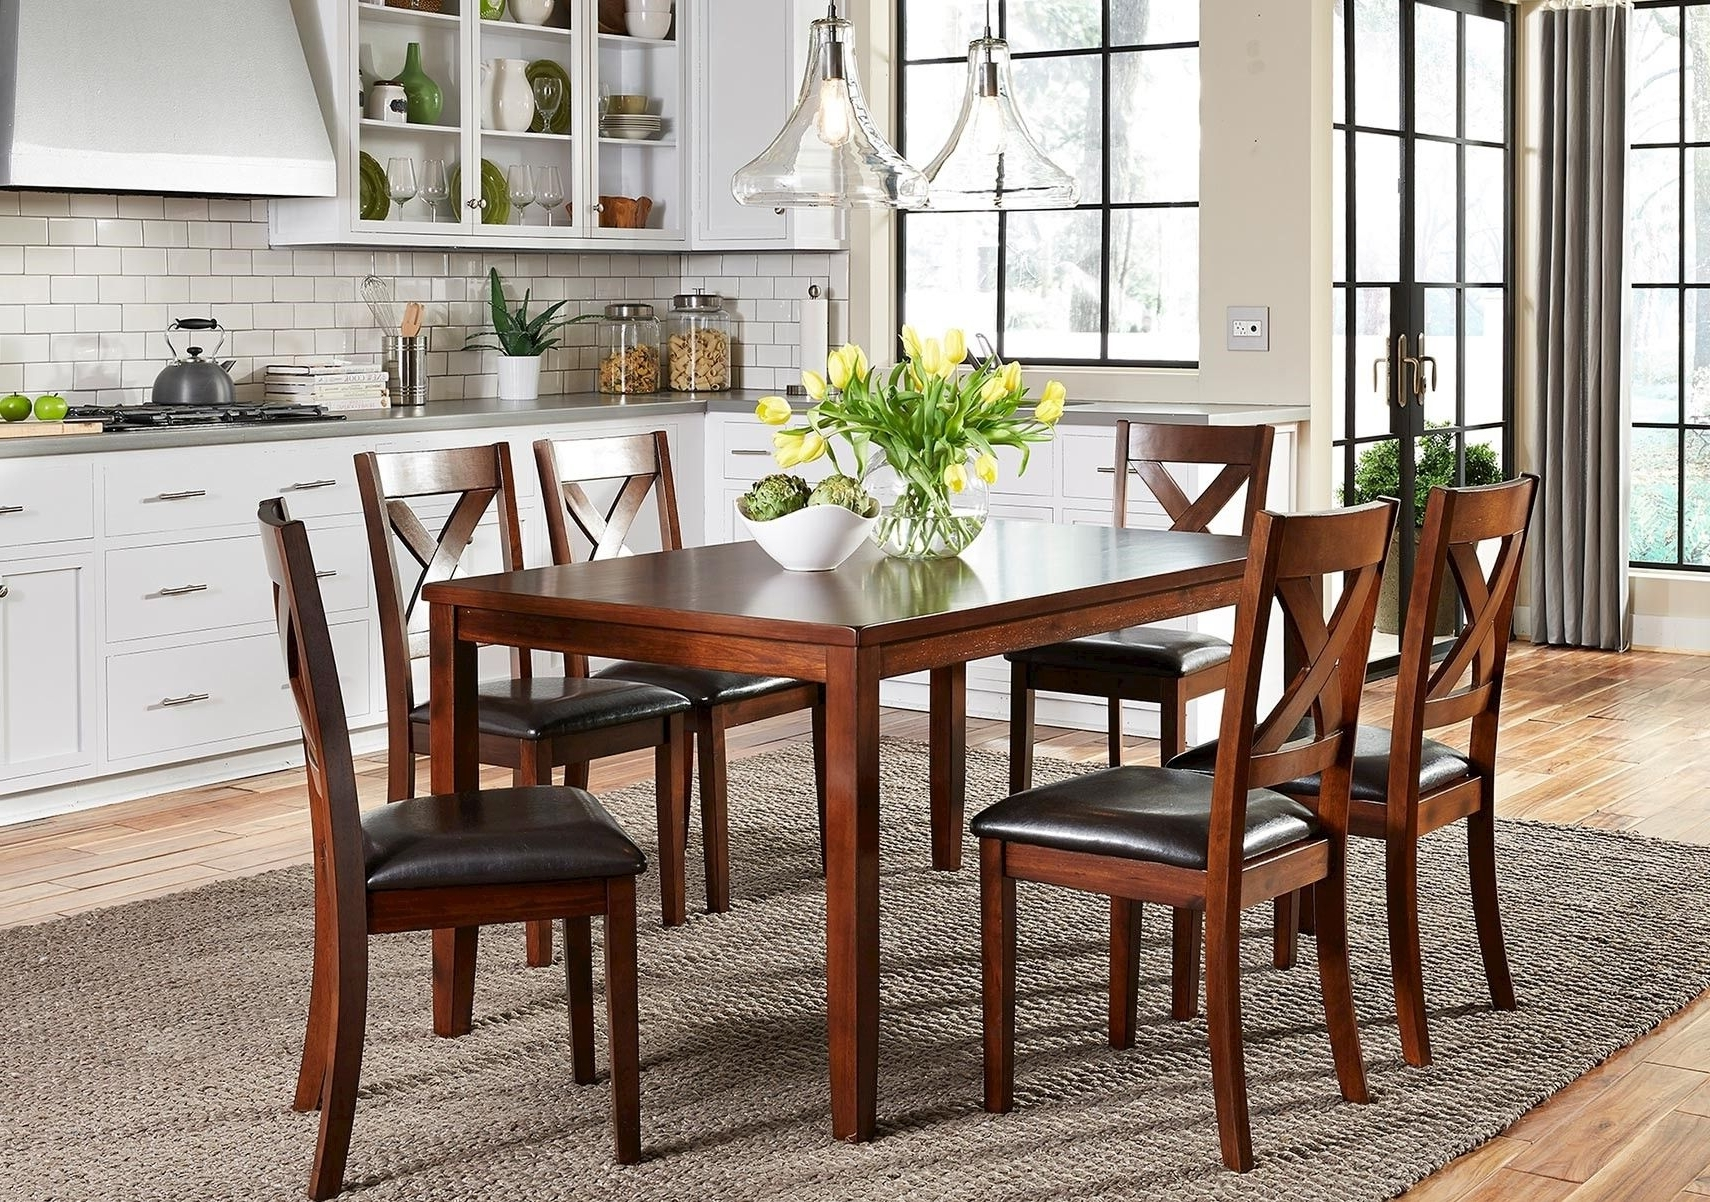 Candice Ii 7 Piece Extension Rectangular Dining Sets With Slat Back Side Chairs Within Most Recent Lacks (View 10 of 25)